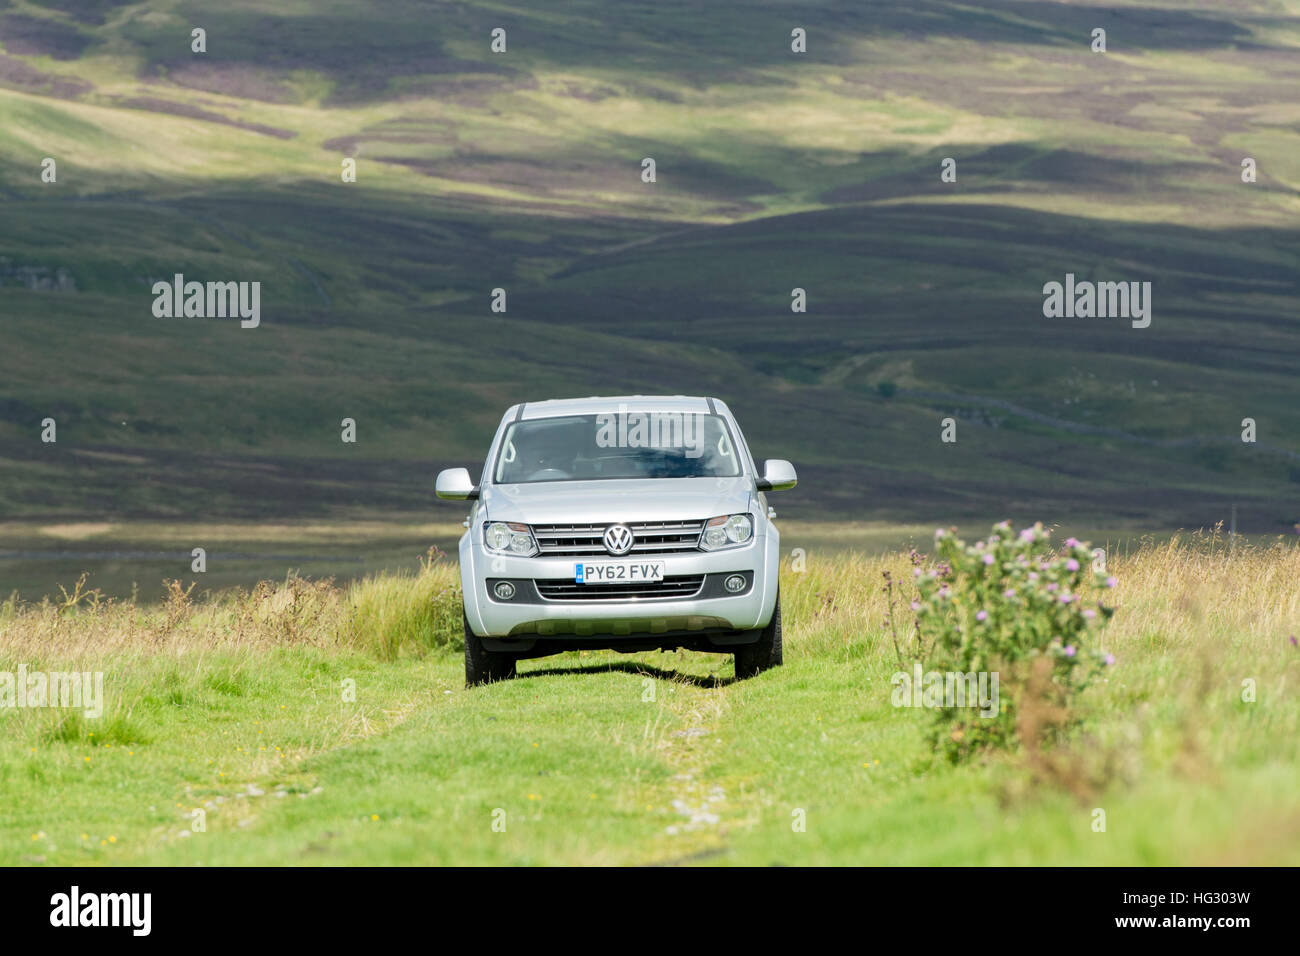 Four wheel drive VW Amarok twin cab pick up driving across upland pasture in North Yorkshire, UK. - Stock Image